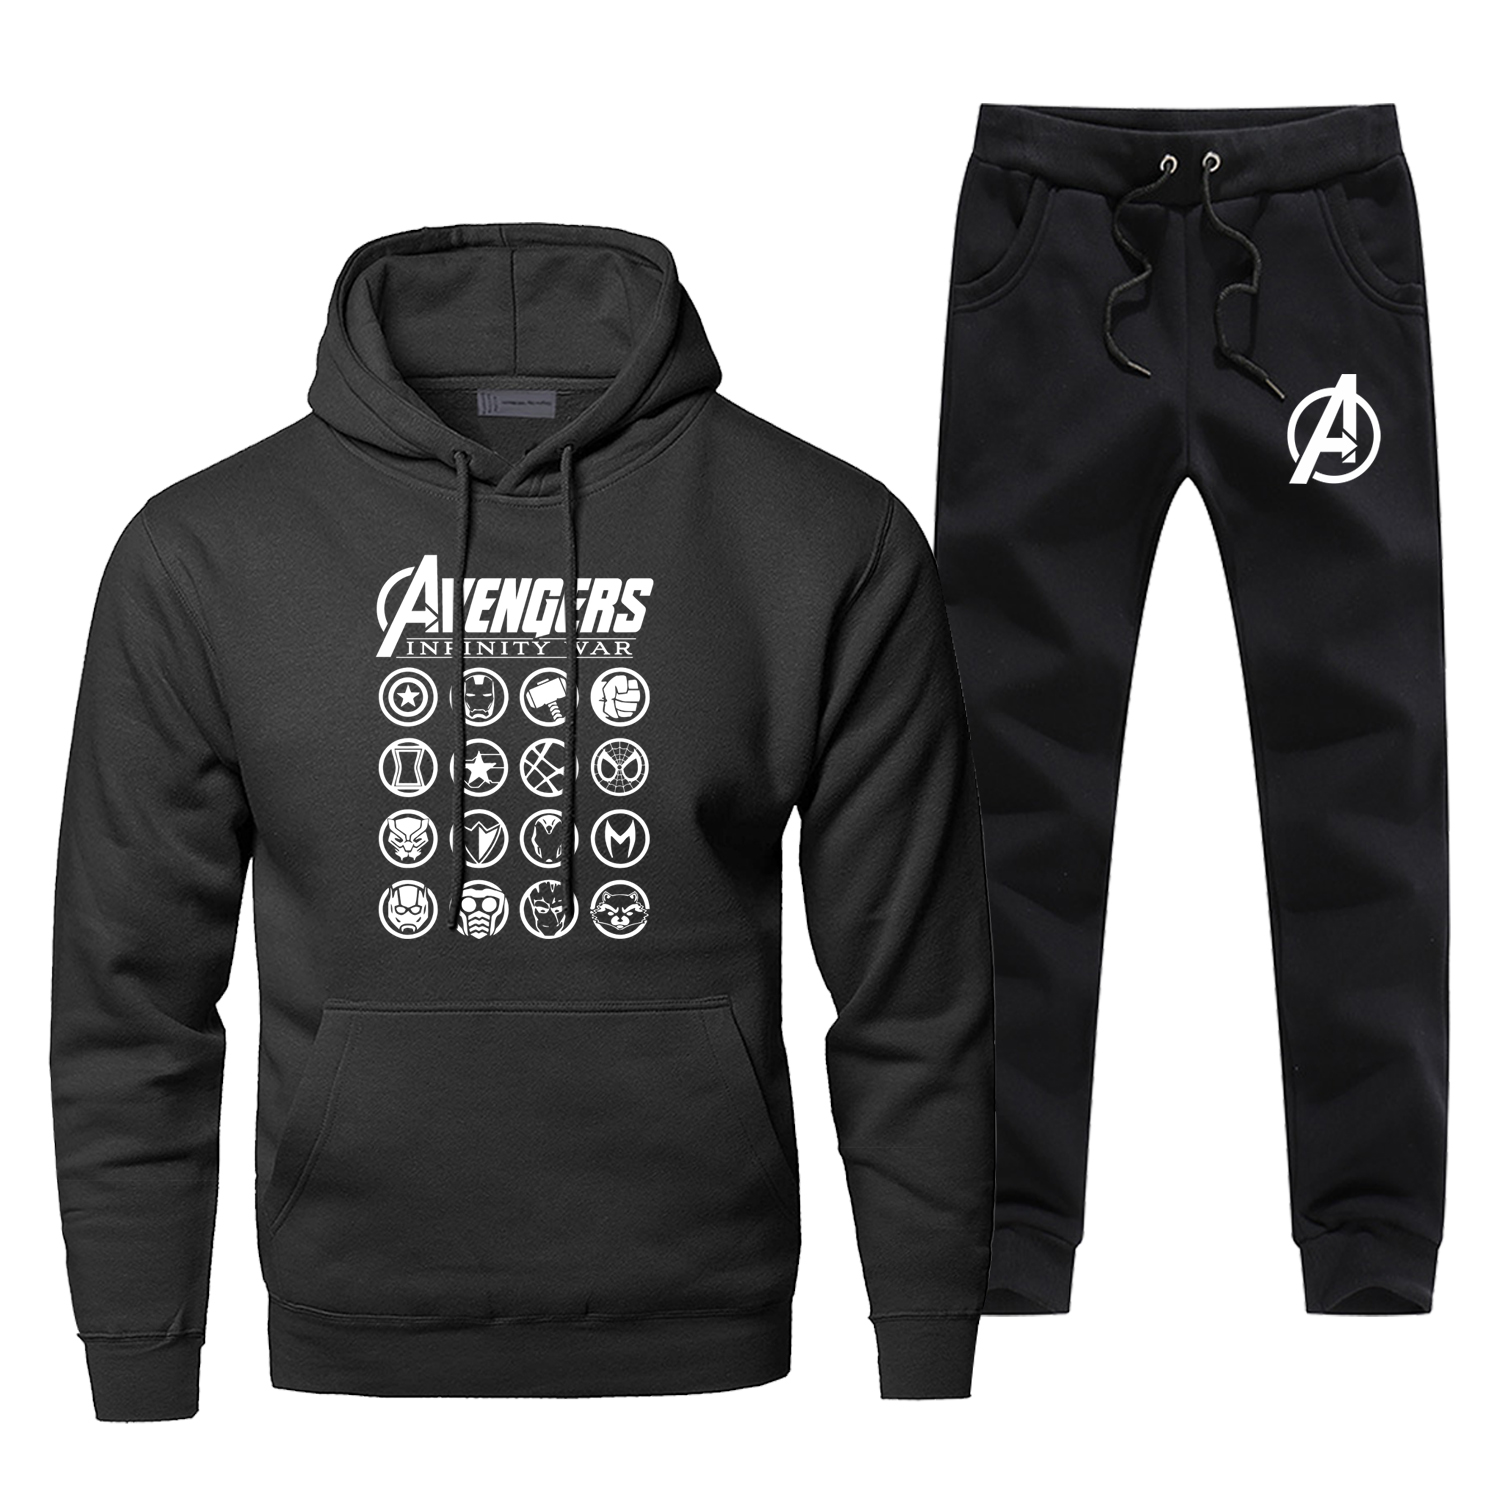 Fashion Marvel Hoodie Infinity War Avengers Logo Print Hoodies Pants Sets Sweatshirt Men Fleece Sportswear Harajuku Streetwear